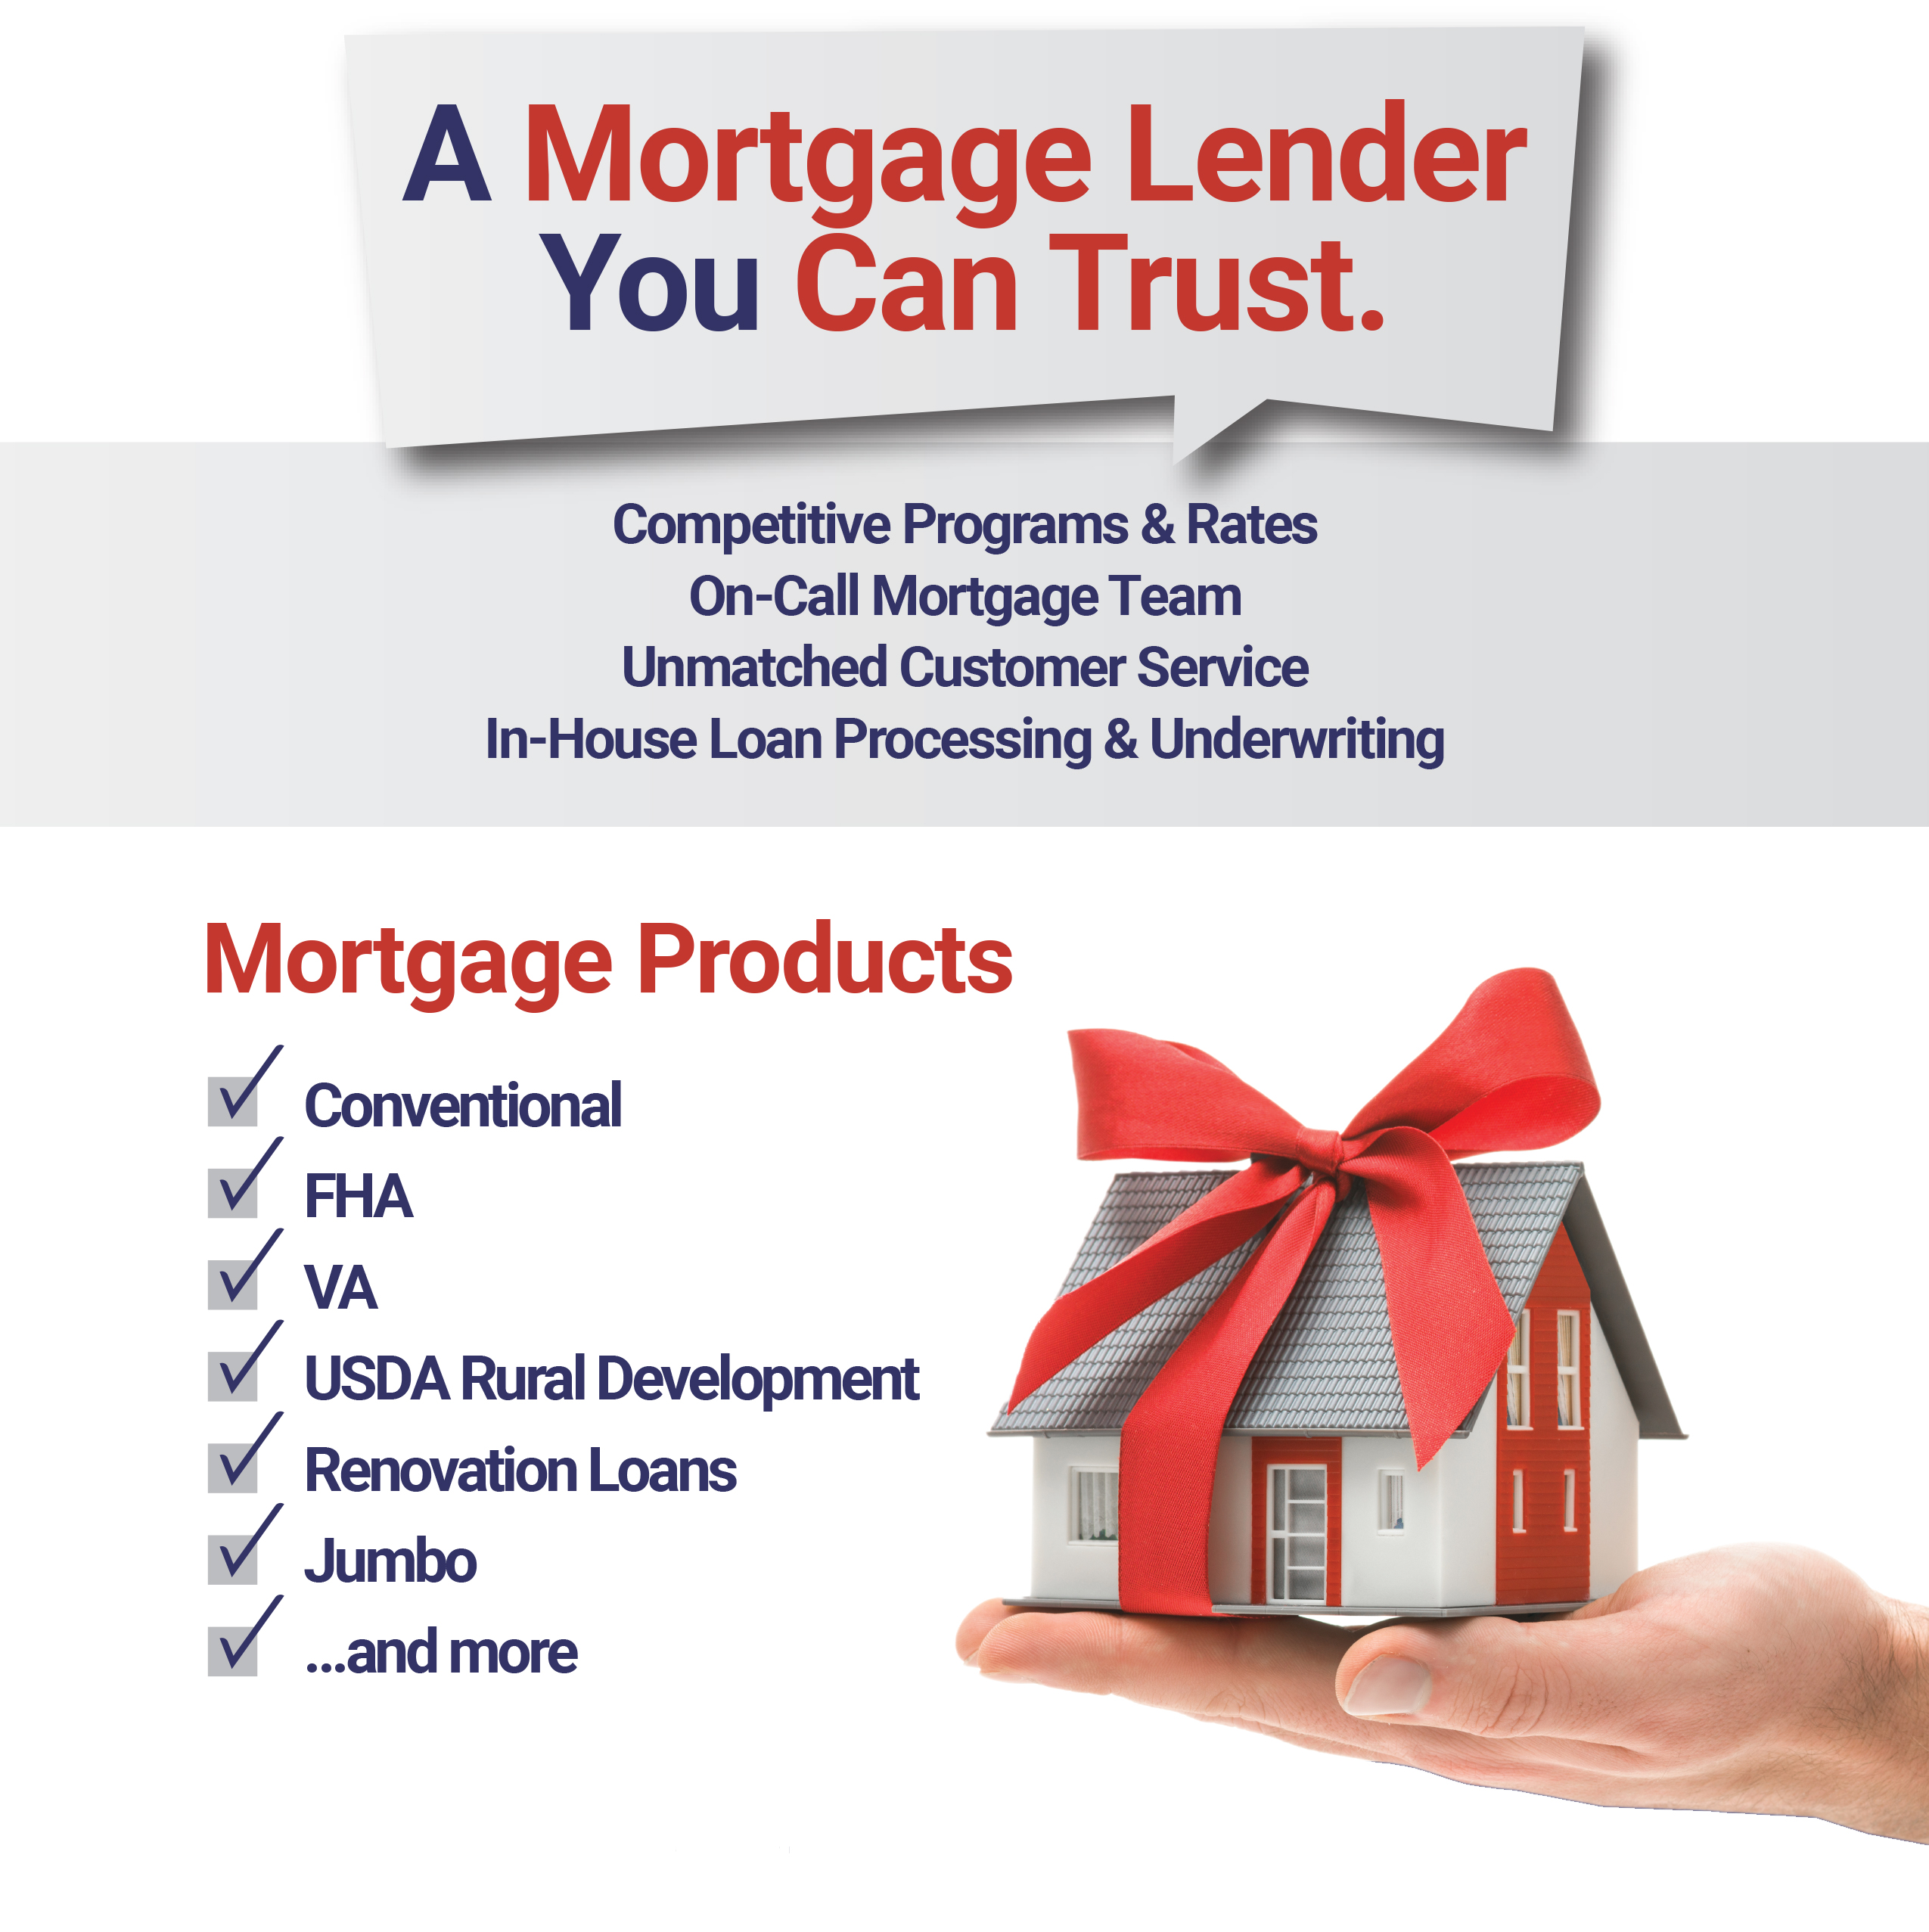 A MORTGAGE LENDER YOU CAN TRUST. COMPETITIVE PROGRAMS AND RATES. ON CALL MORTGAGE TEAM. UNMATCHED CUSTOMER SERVICE. IN HOUSE LOAN PROCESSING AND UNDERWRITING. MORTGAGE PRODUCTS: CONVENTIONAL, FHA, VA USDA RURAL DEVELOPMENT, RENOVATION LOANS, JUMBO AND MORE.